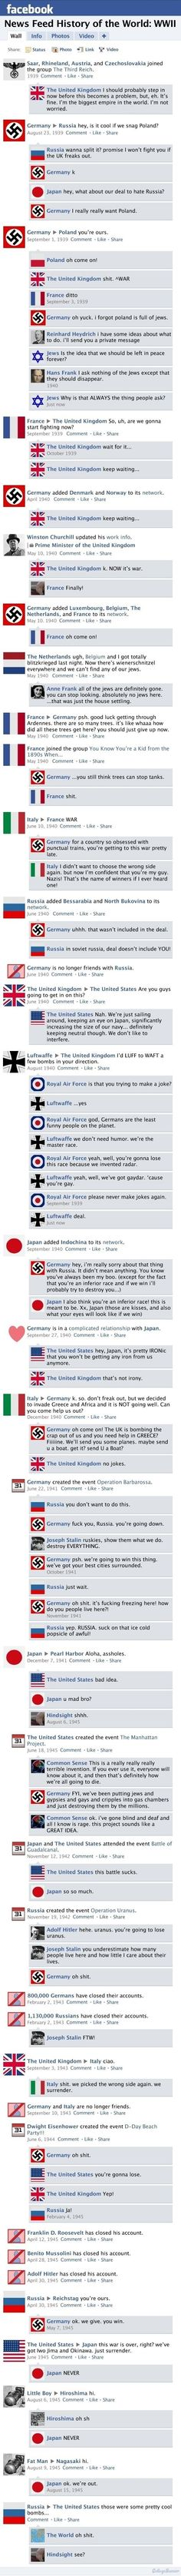 Not usually one for LONG pins, but this is hysterical. Facebook News Feed of WWII History.